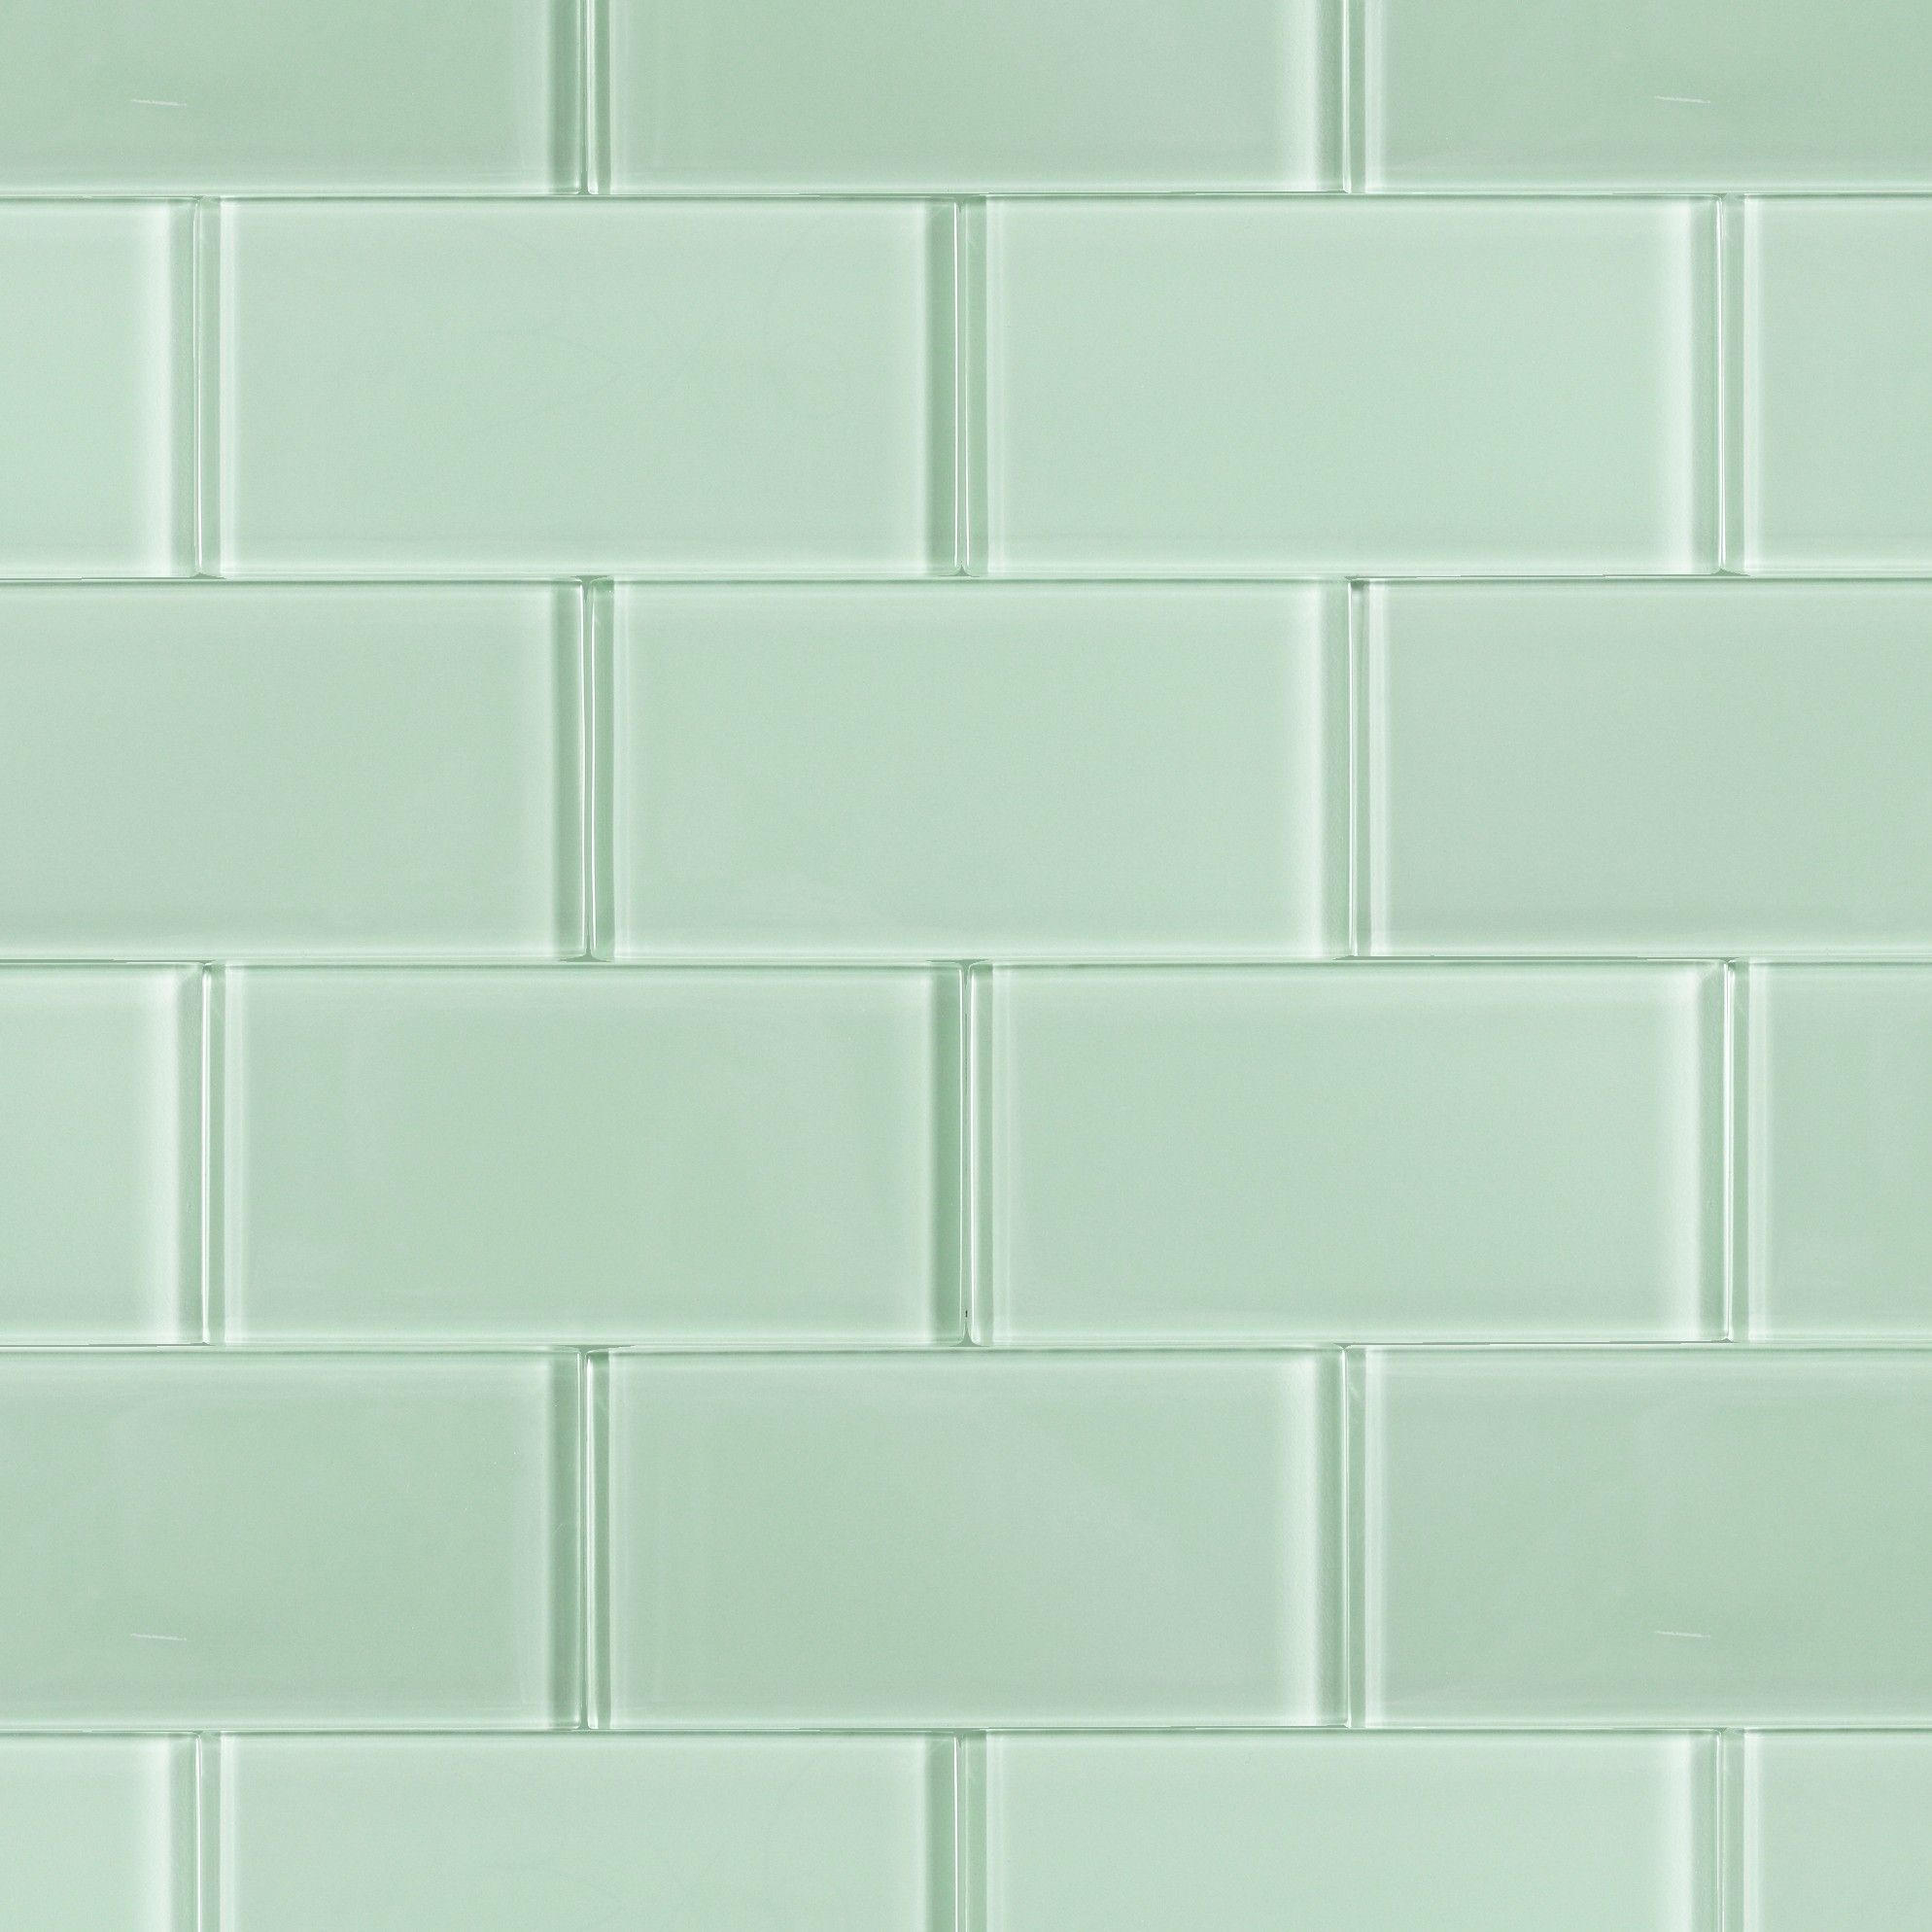 Loft Seafoam Green Glass Subway Tile 3x6 In 2020 Glass Tile Bathroom Glass Subway Tile Bathroom Sea Glass Tile